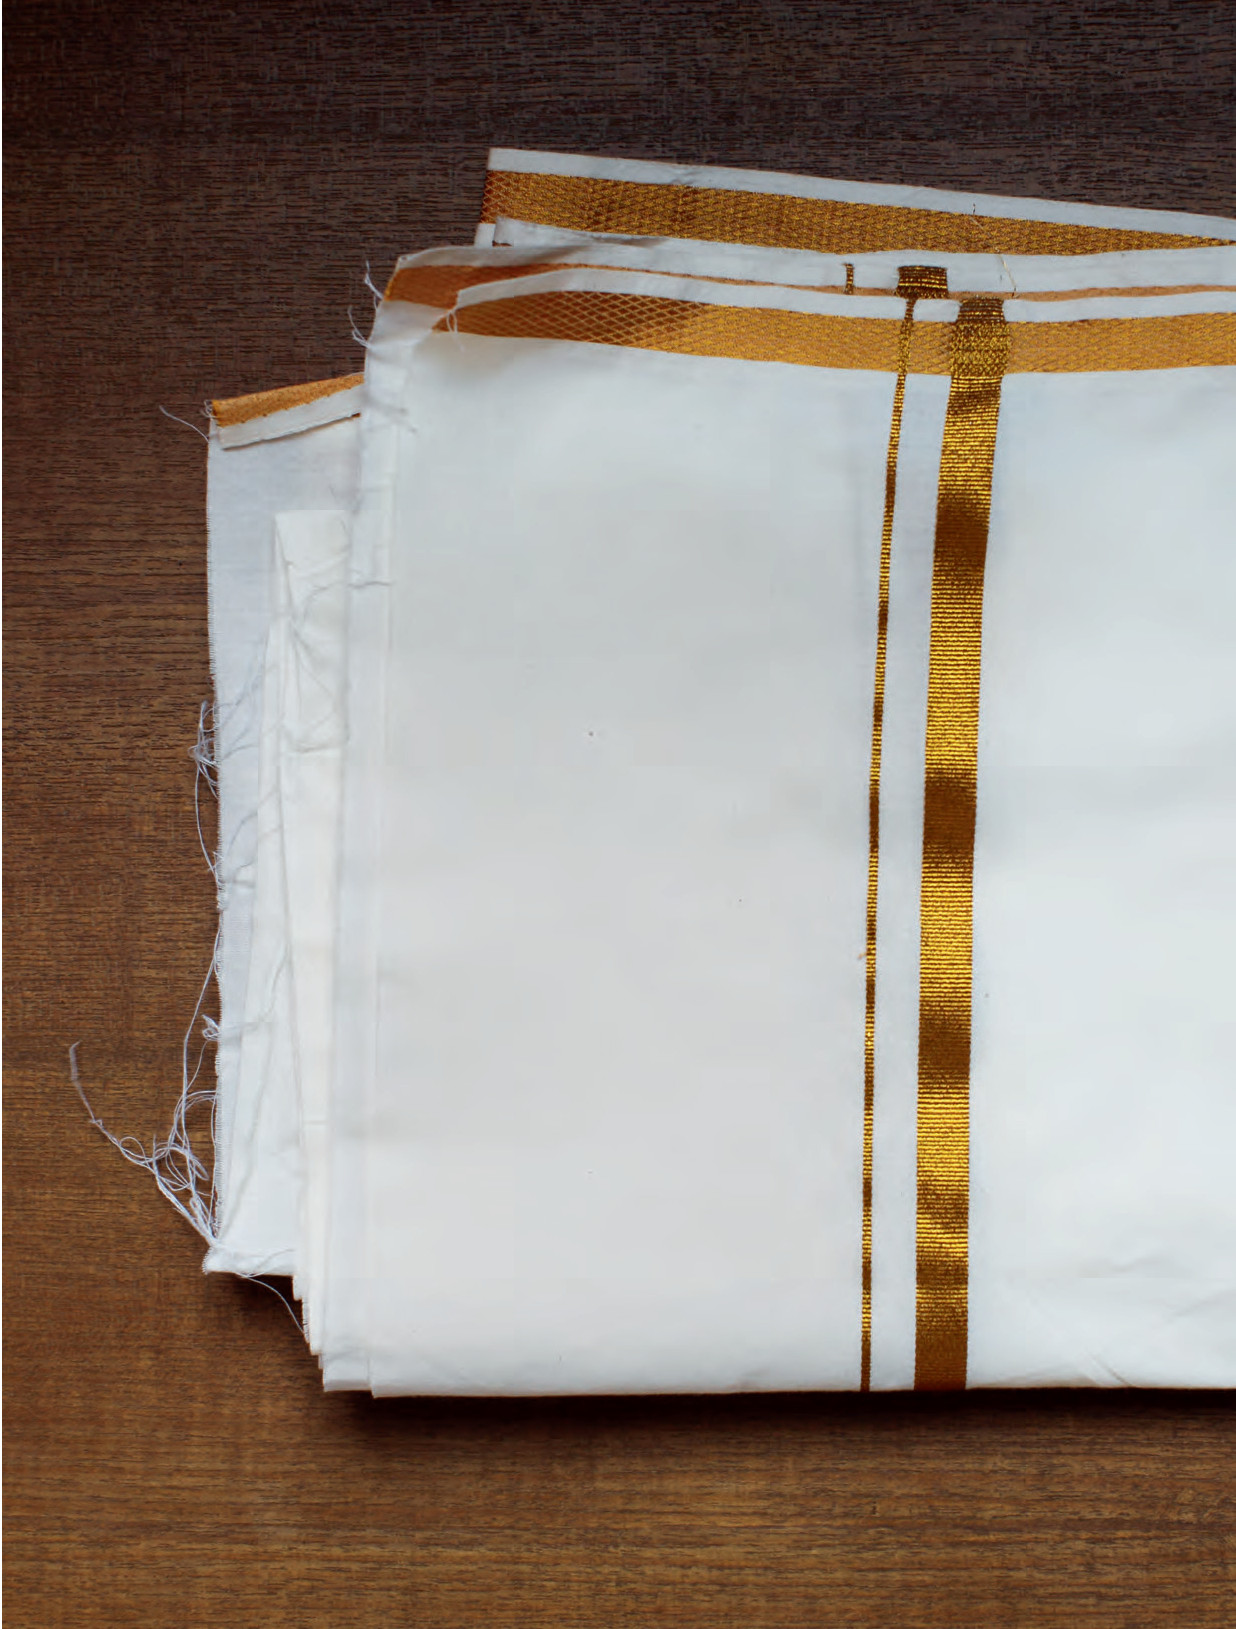 Dhoti, from Sar